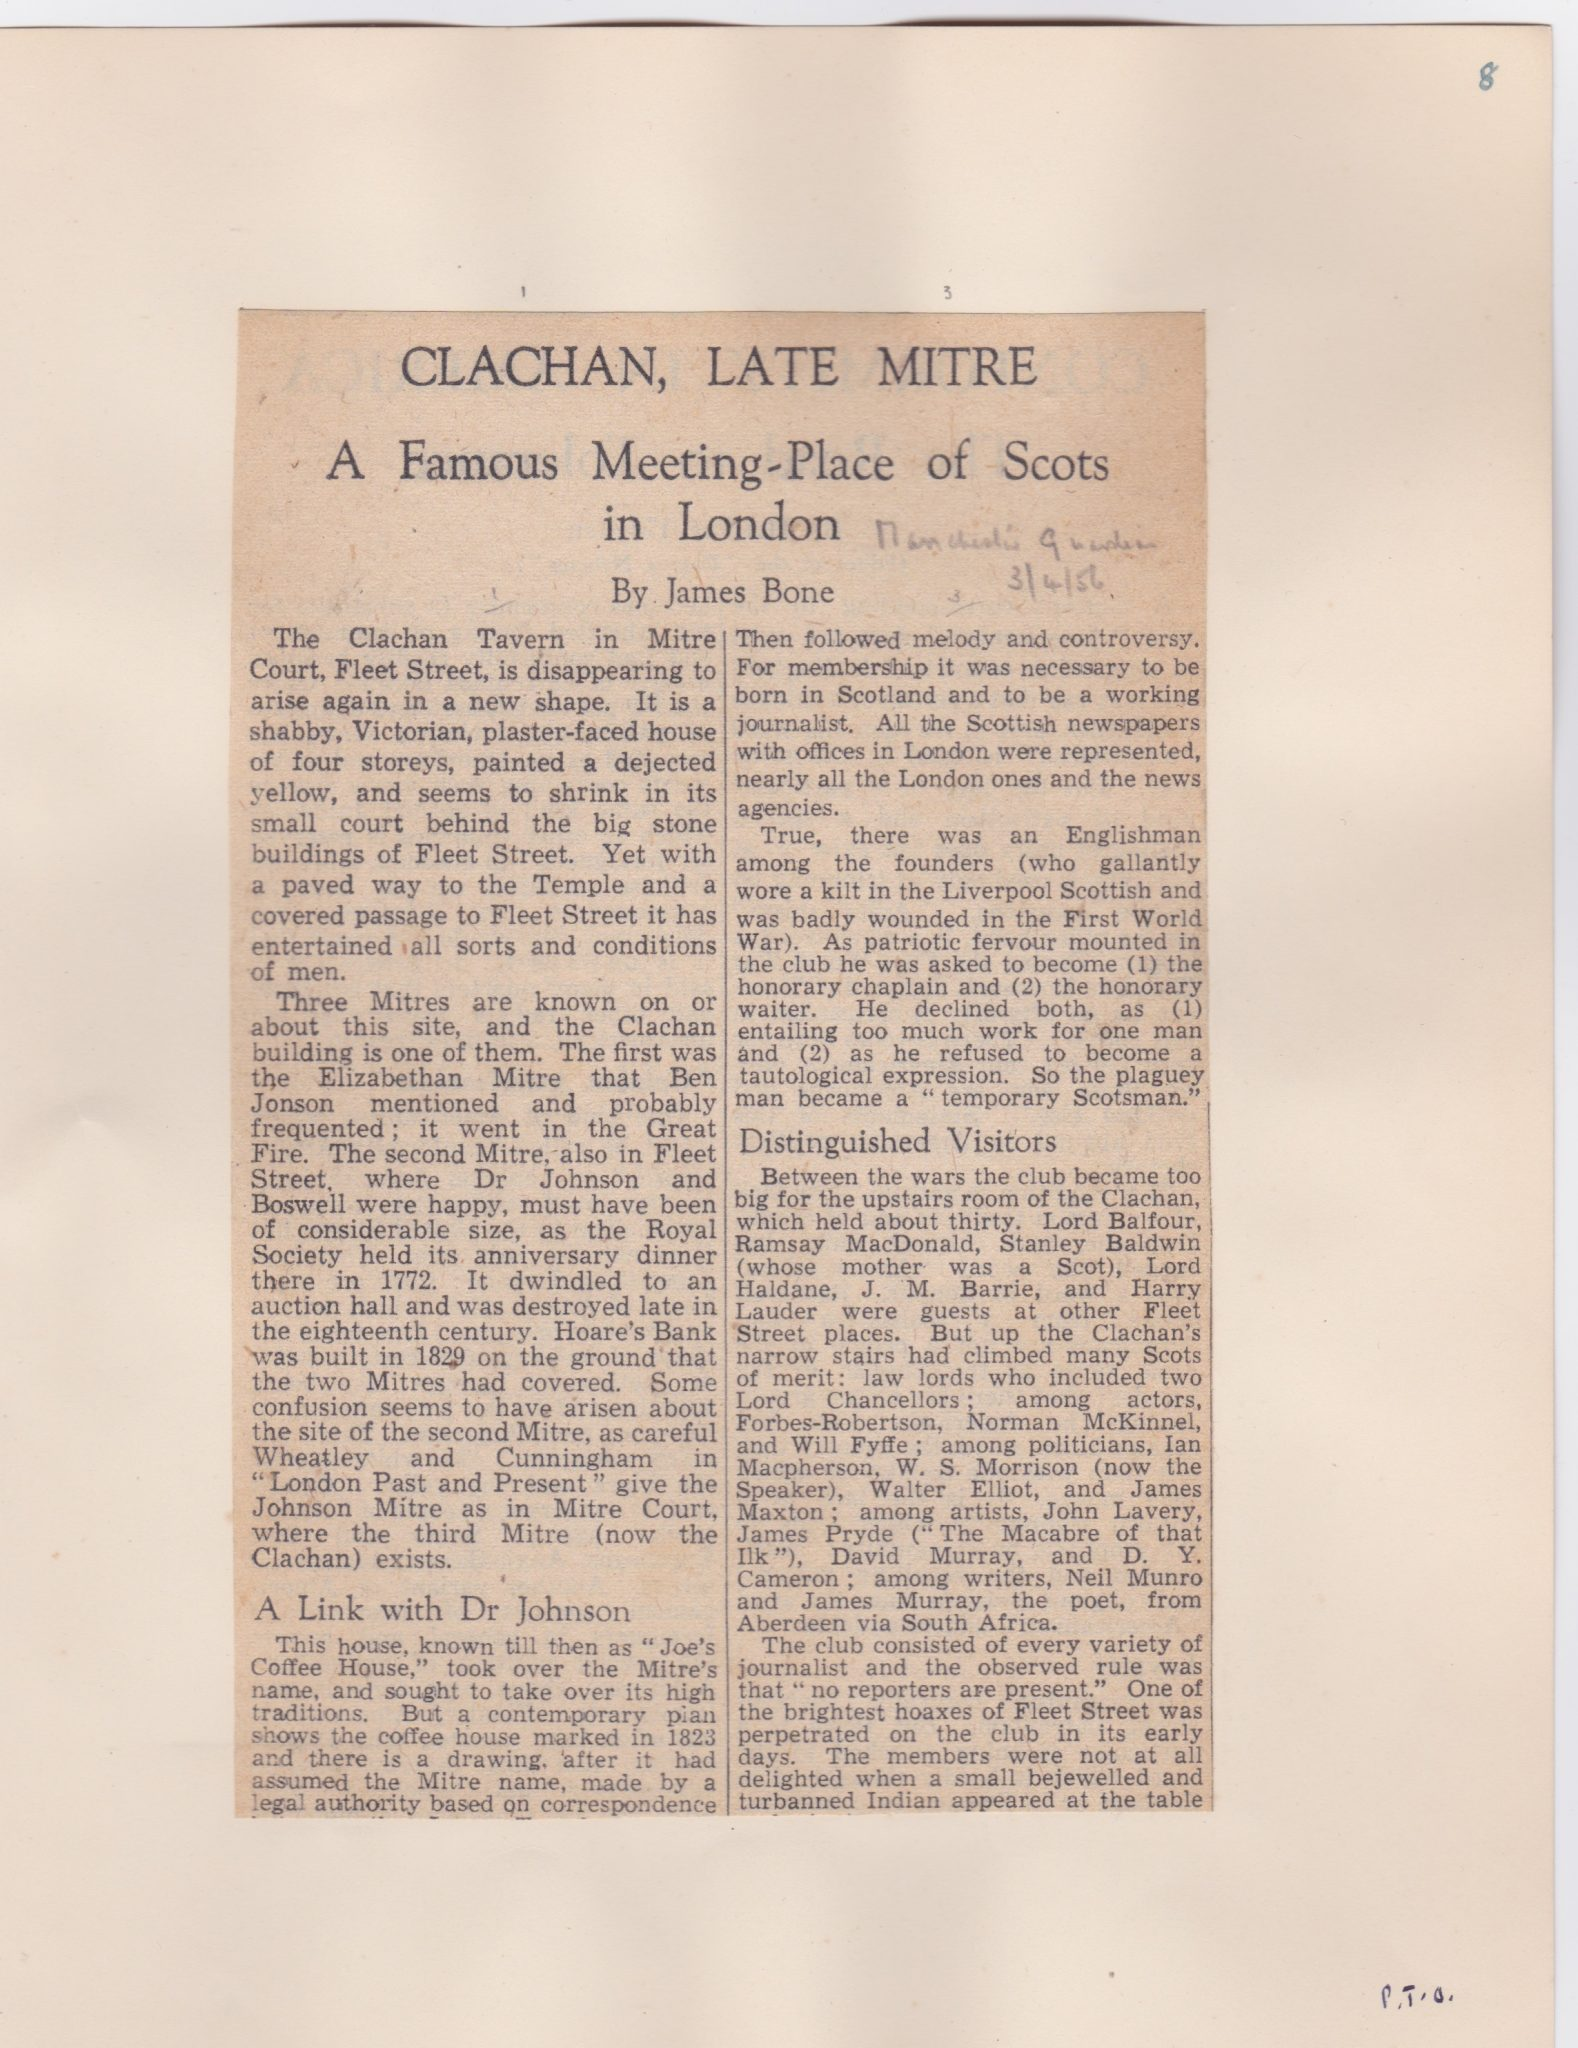 An article from 1956 about the pub called The Clachan formerly known as The Mitre